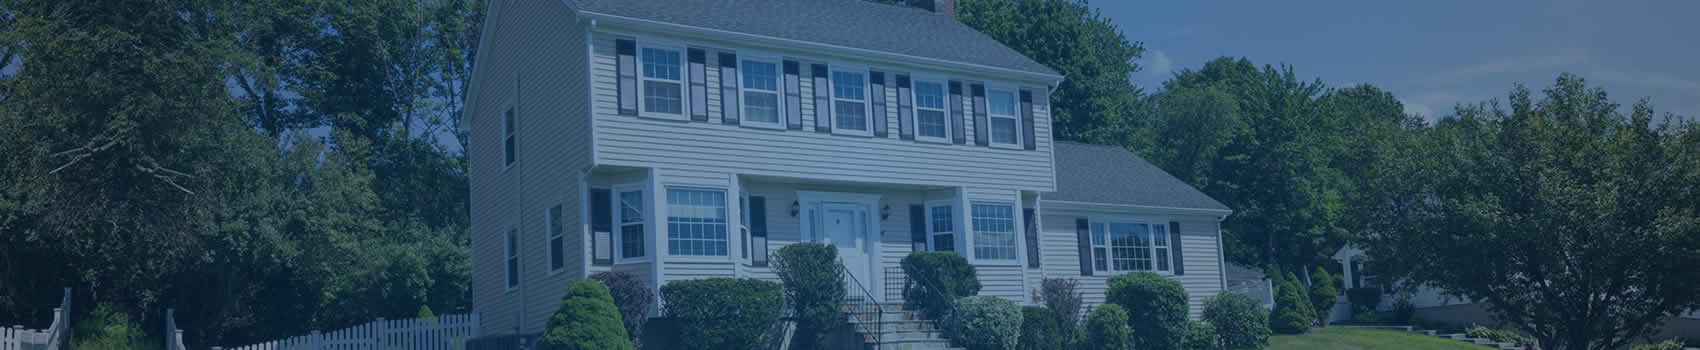 Falling behind on your mortgage?You have options.